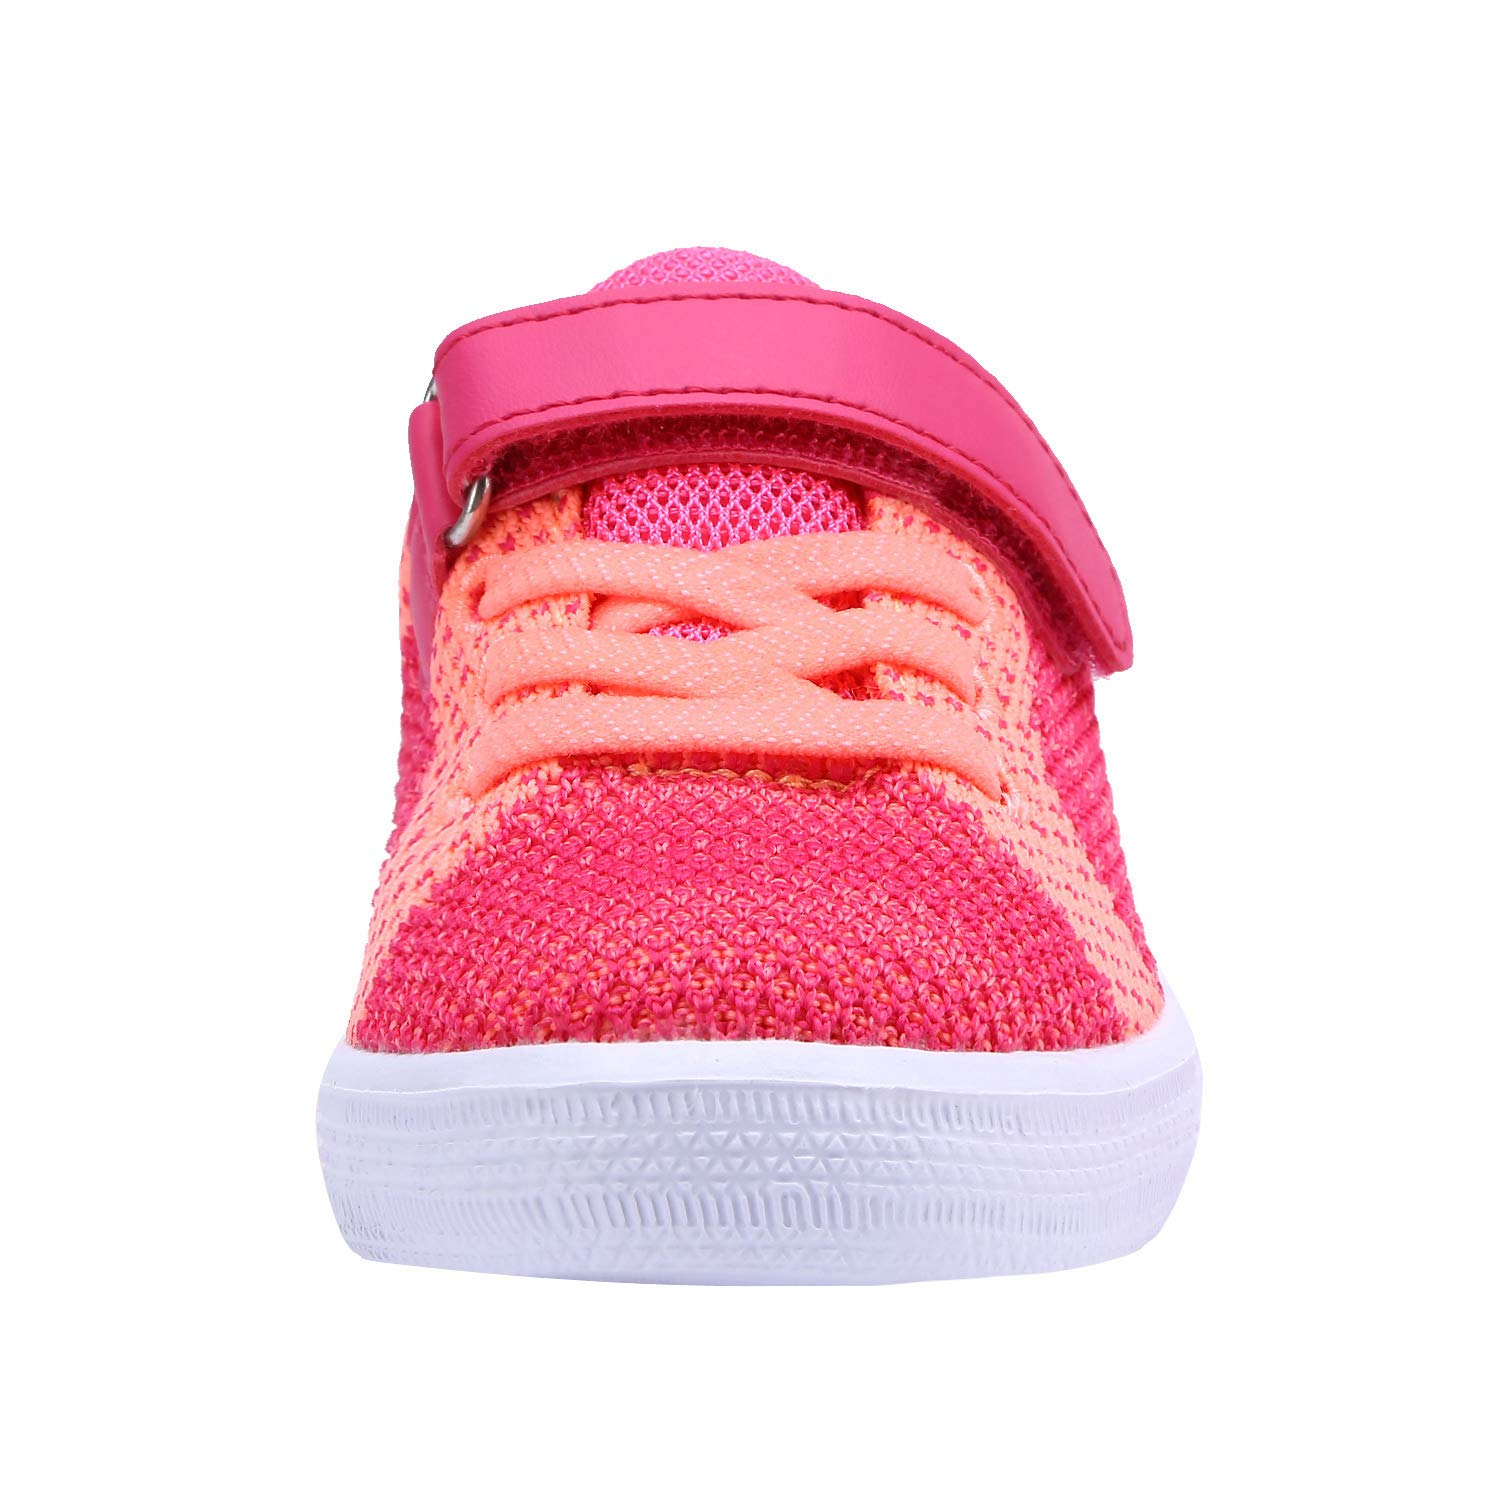 Toddler//Little Kid Zoneyue Girls Low Top Buckled Tennis Skate Shoes Bungee Straps Flat Sneakers